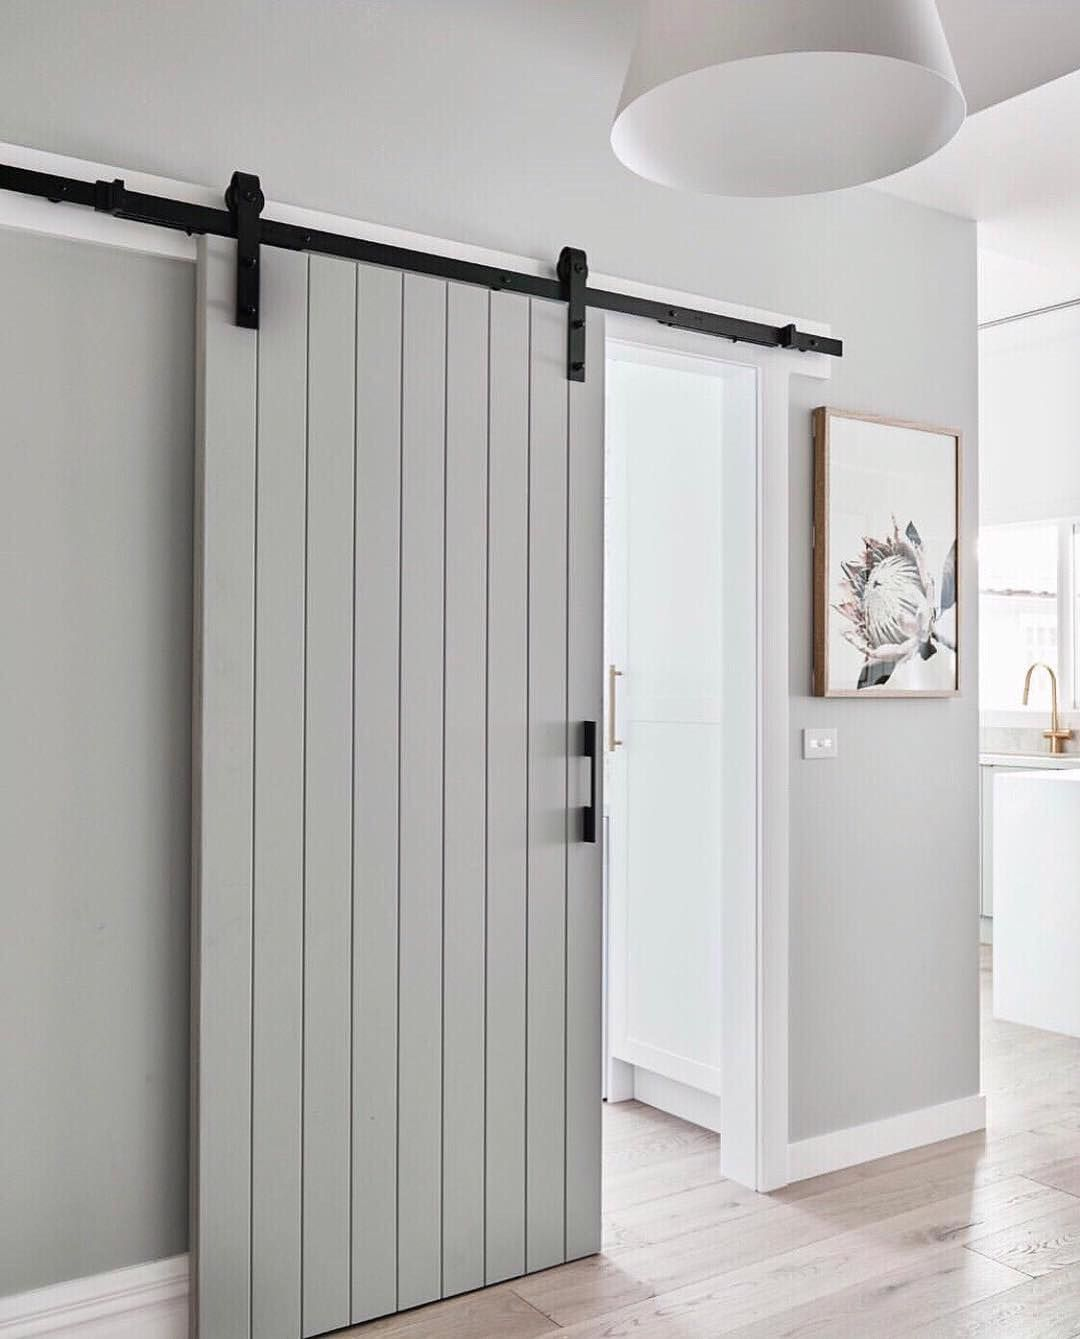 The Little Design Corner On Instagram More Beautiful Barn Door Inspiration For You This Time Coming Fro Modern Barn Door Diy Sliding Barn Door Barn Door Kit